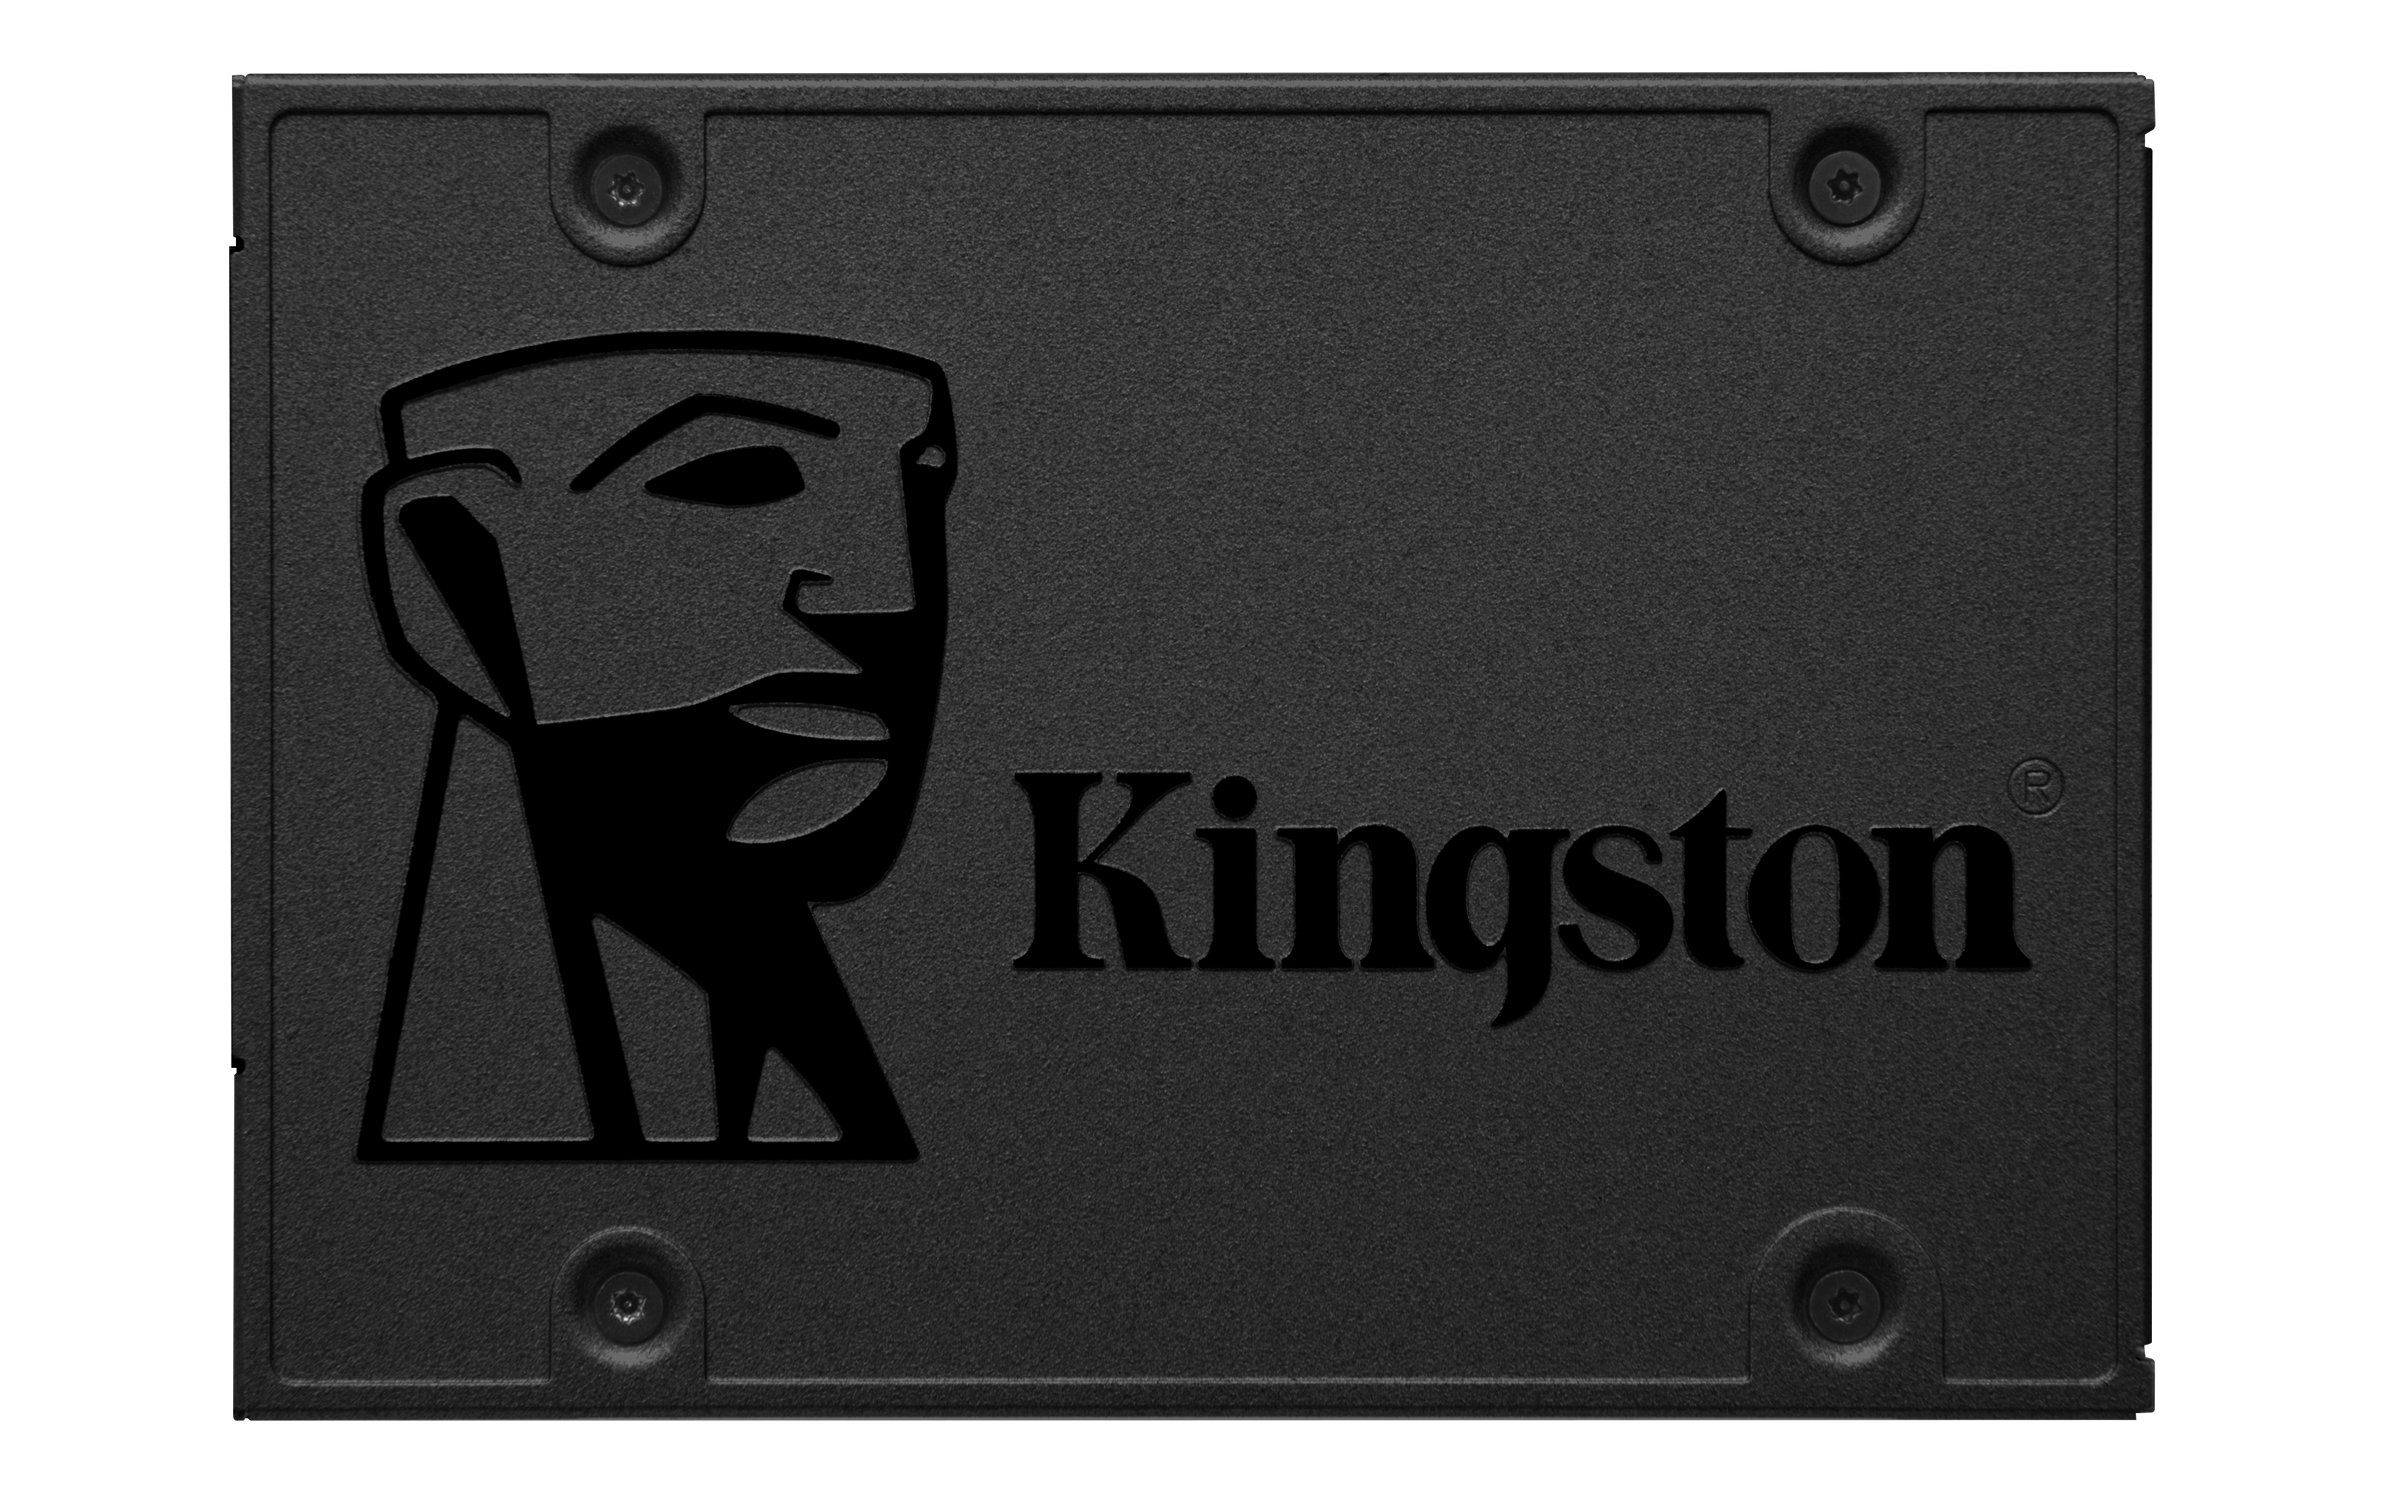 Kingston 480GB A400 SATA3 2.5'' Internal SSD SA400S37/480G - HDD Replacement for Increase Performance by Kingston